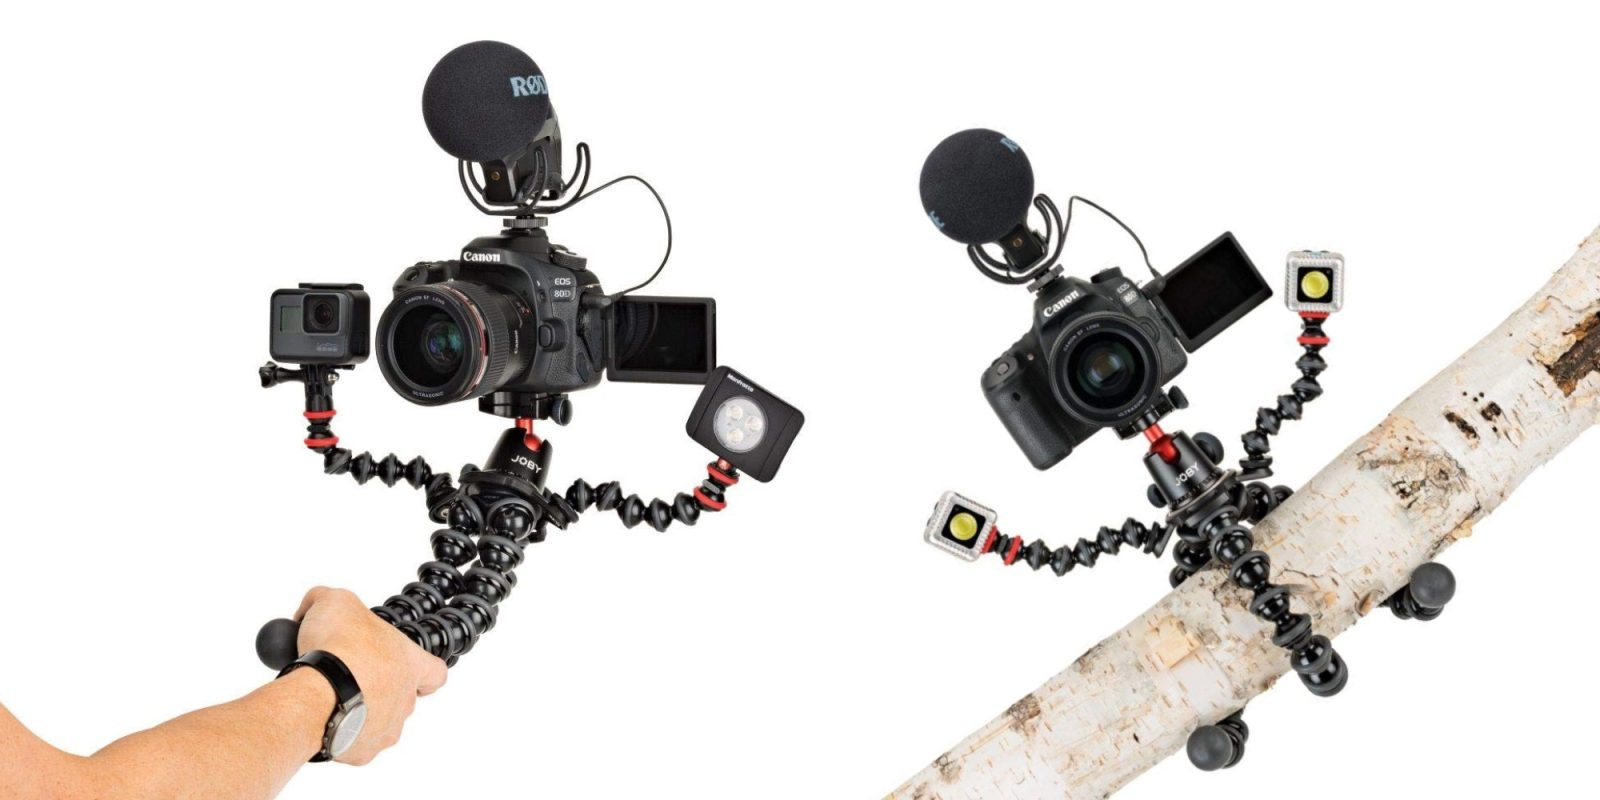 Supercharge your photography kit with JOBY's GorillaPod Rig at $85 (Reg. $200)